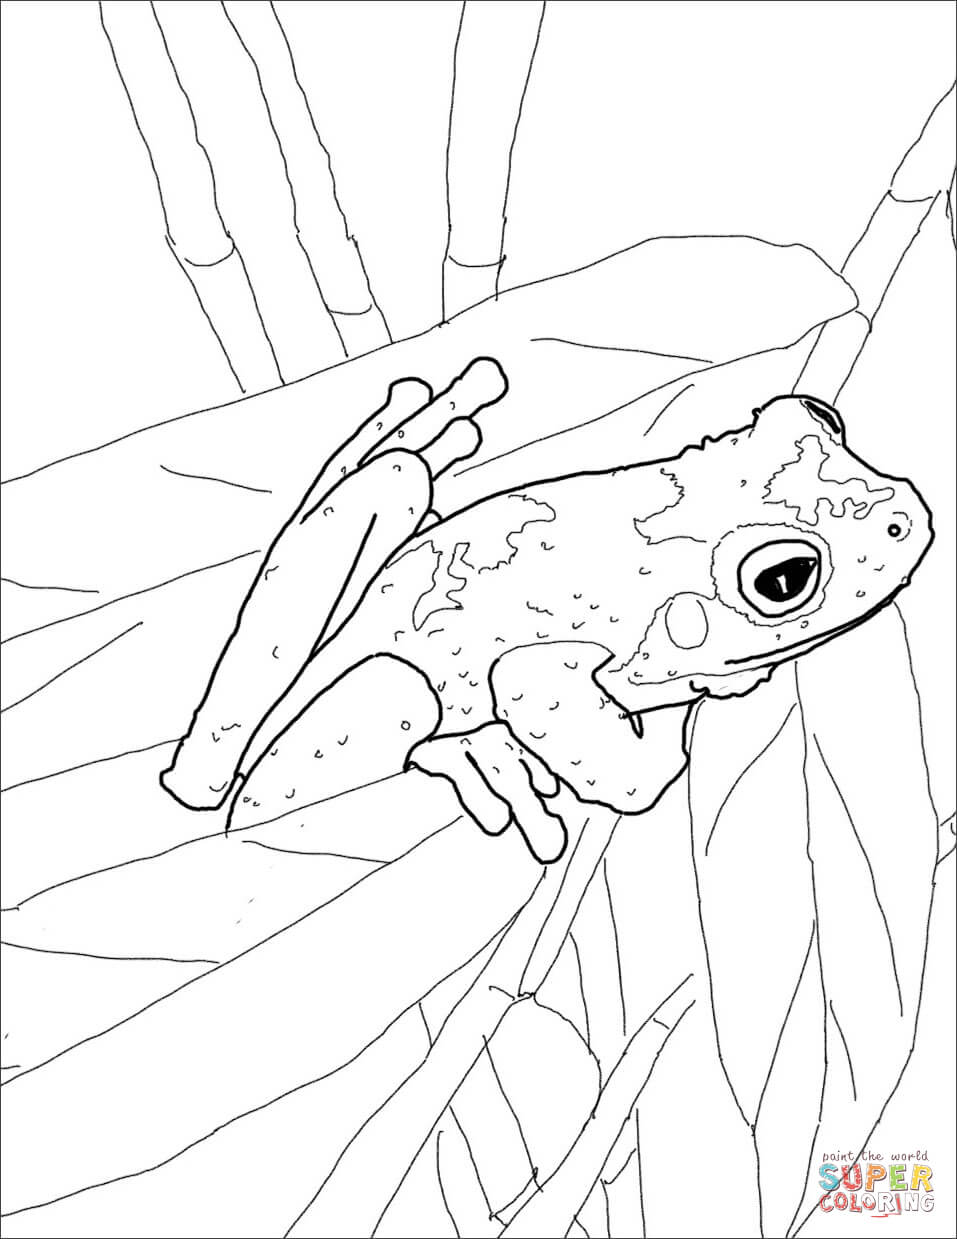 green tree frog coloring page tree frog coloring page free printable coloring pages tree coloring frog green page